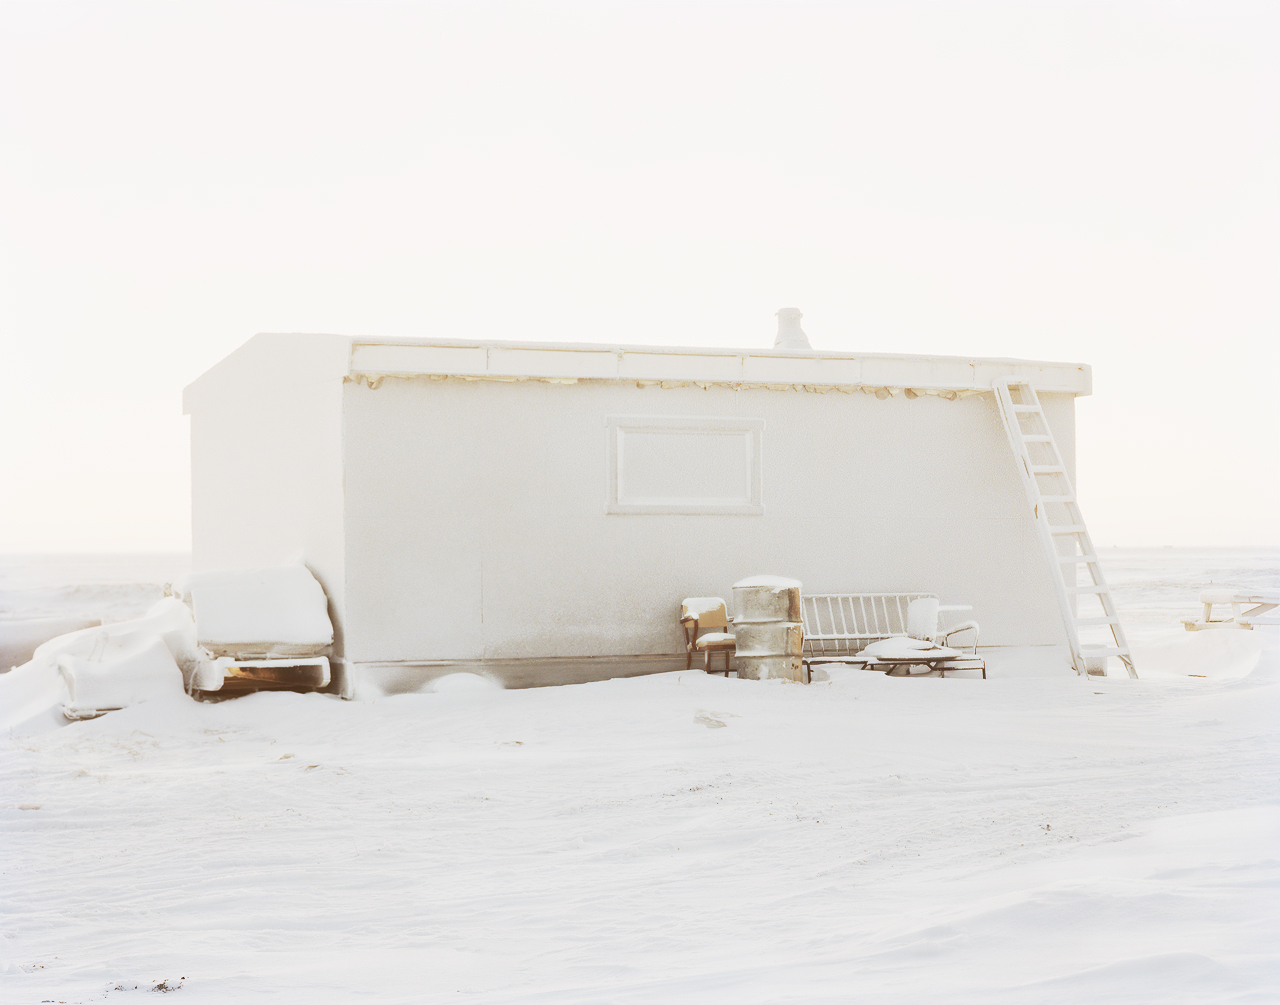 Barrow Cabins / Eirik Johnson